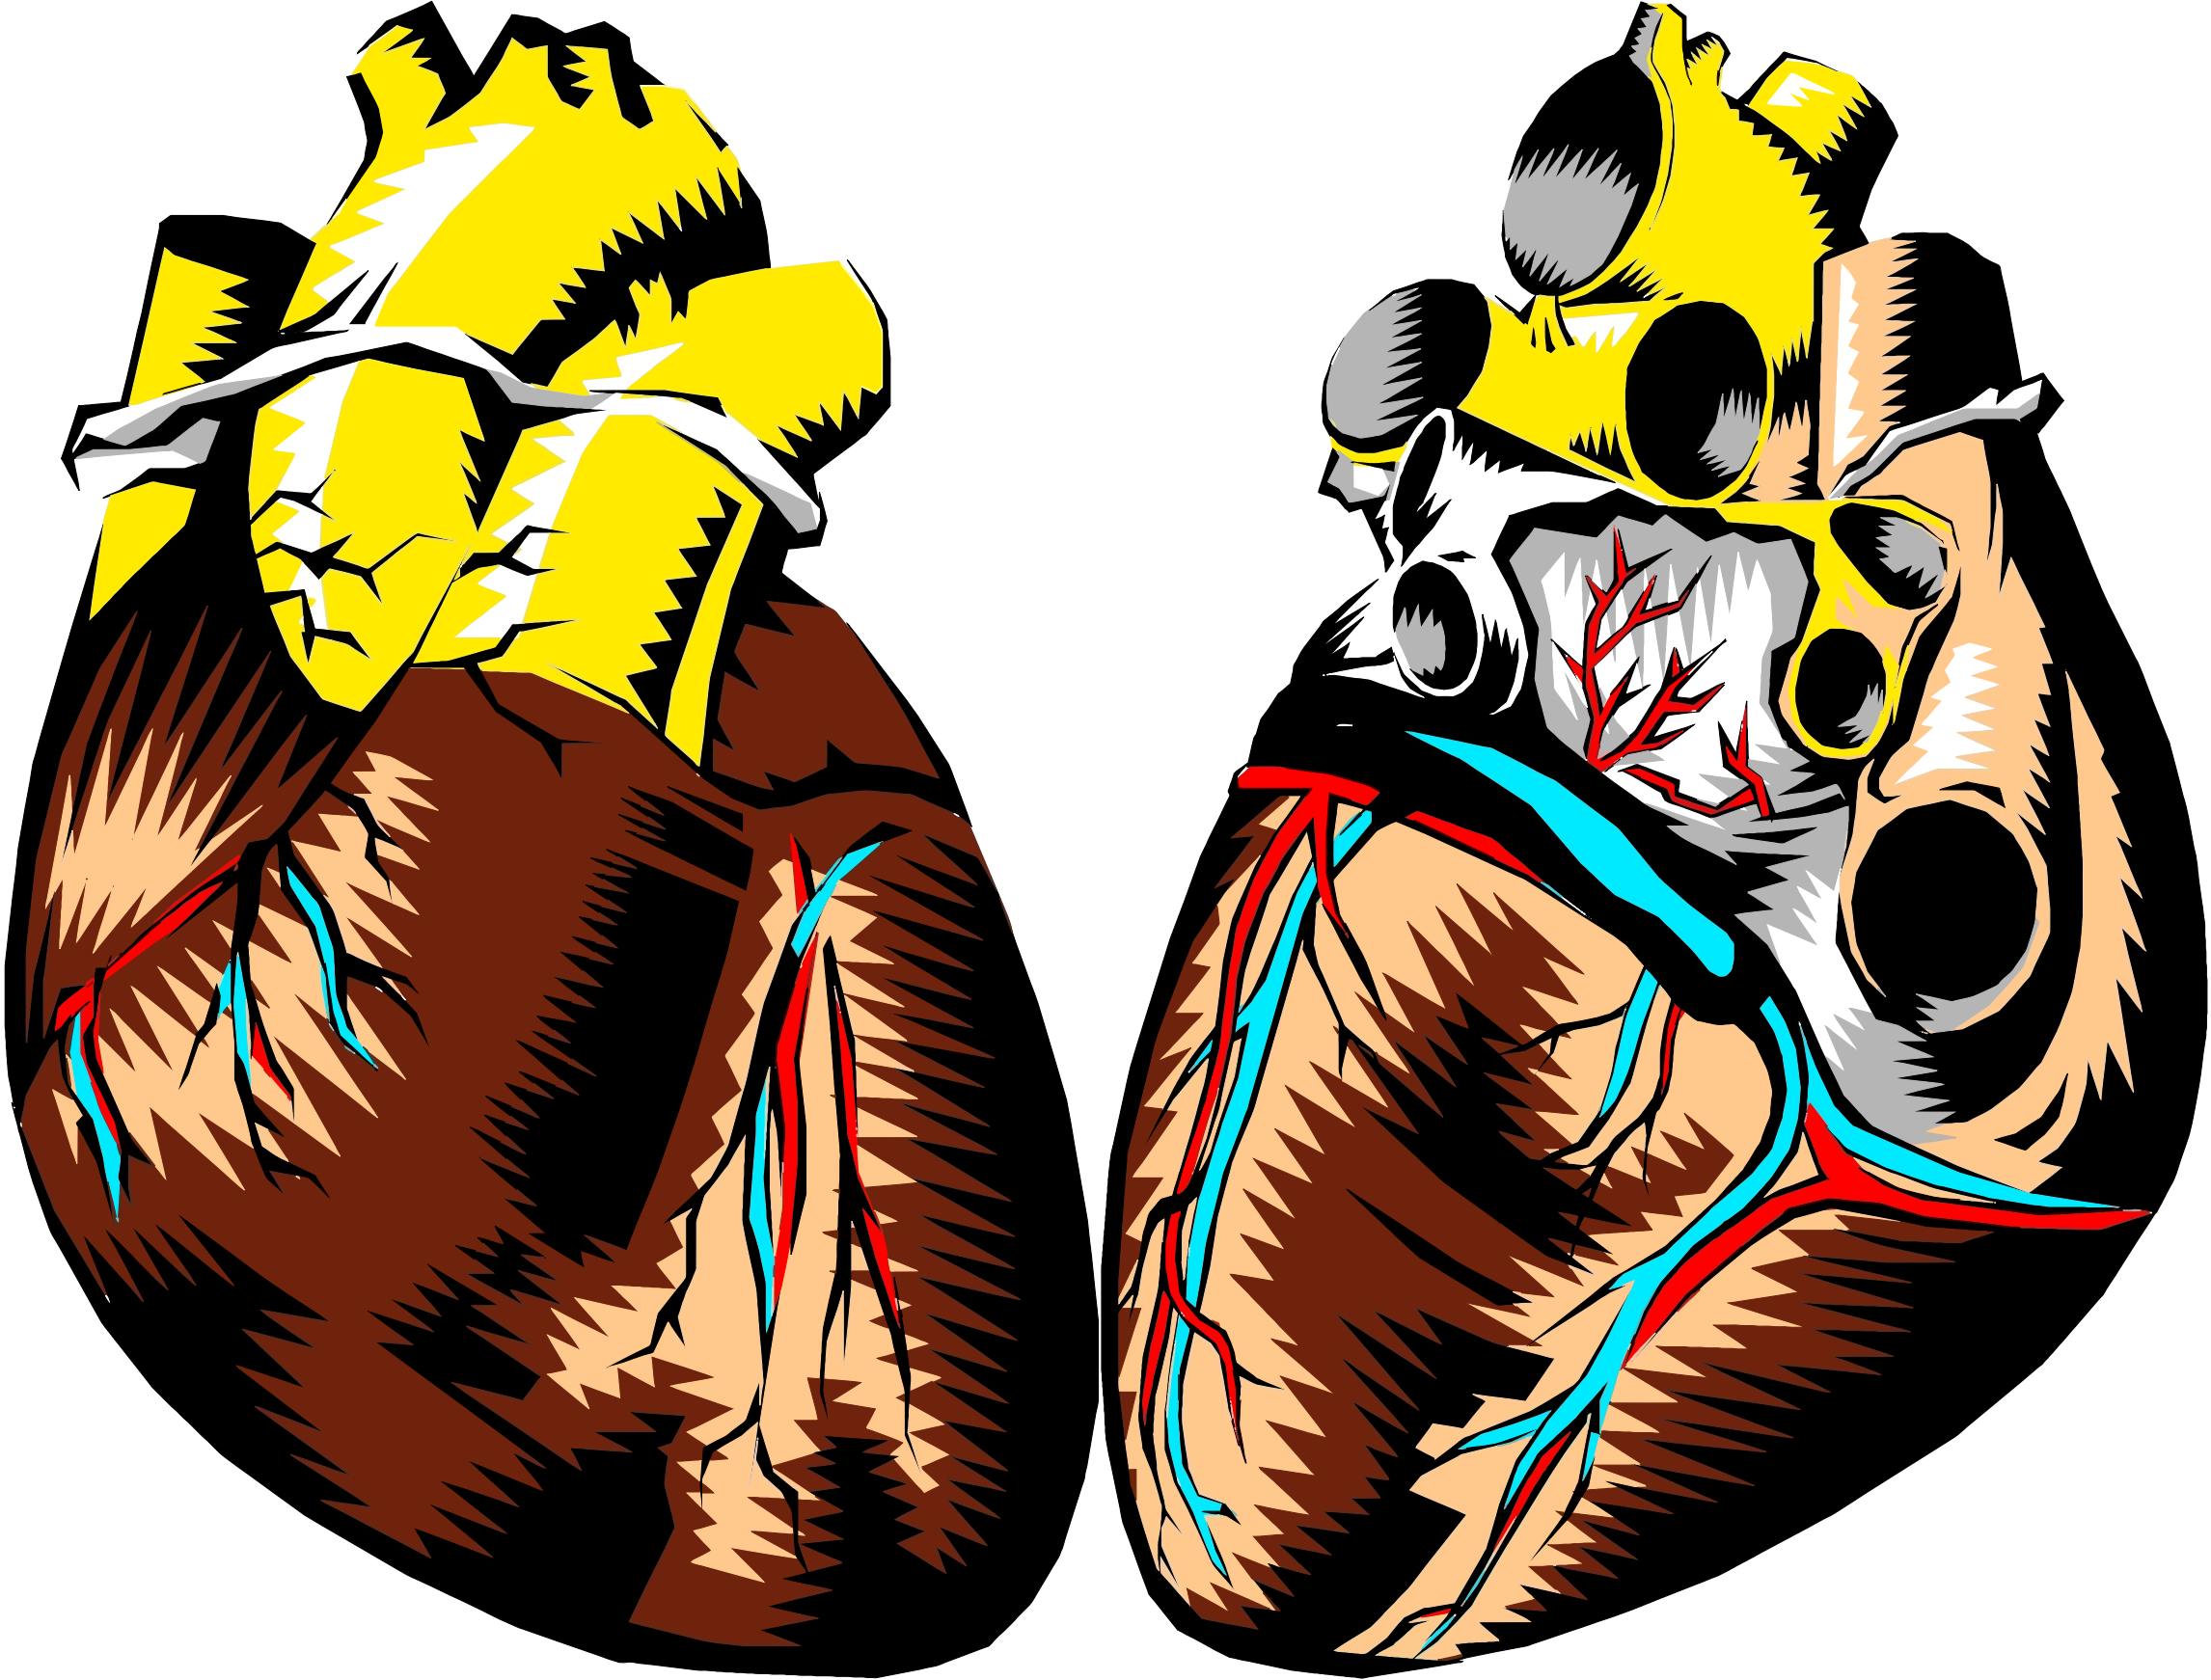 Heart Cross Section Illustration by GDJ